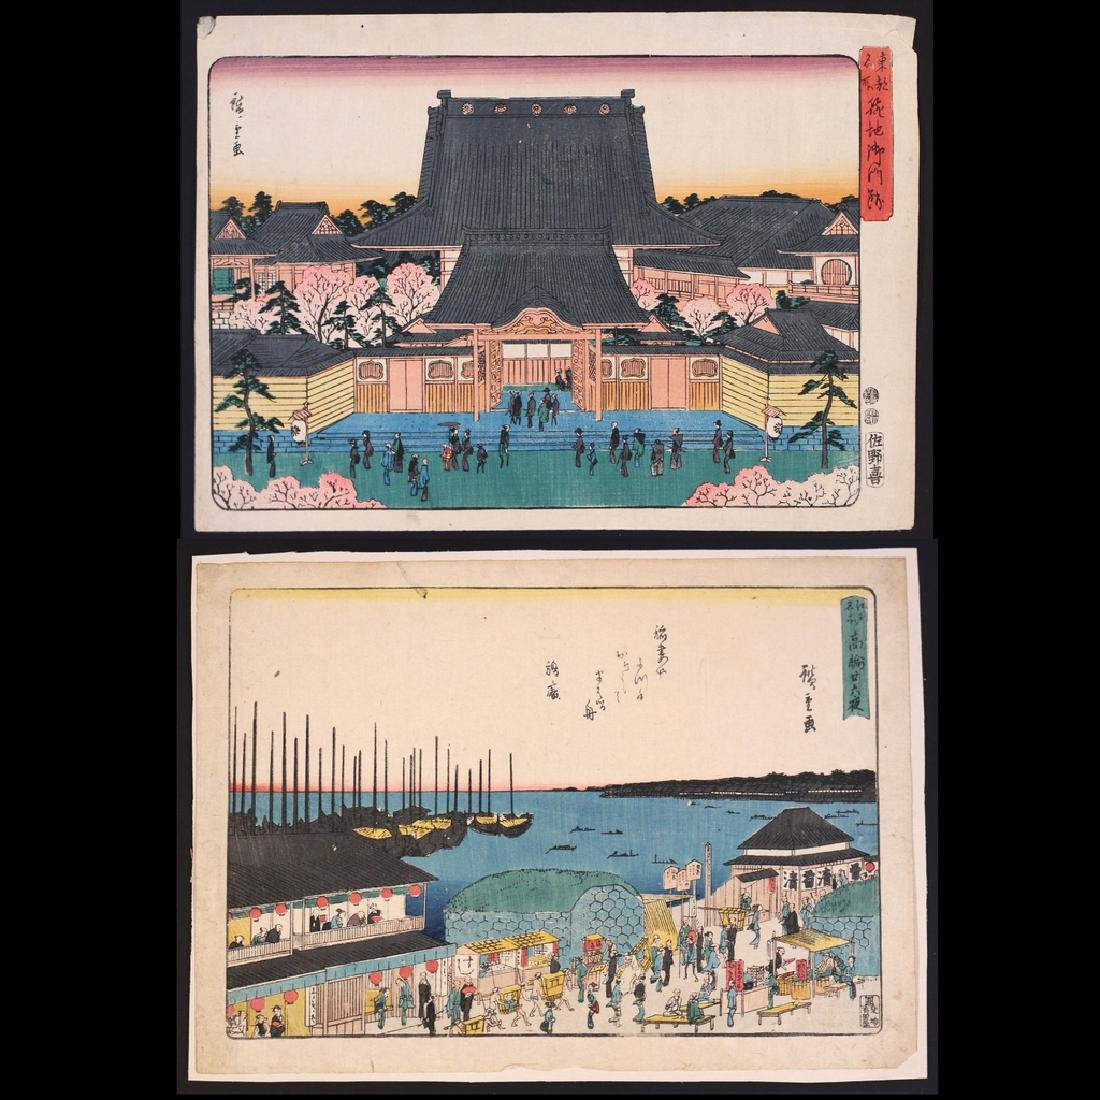 (2pc) RARE & EARLY UTAGAWA HIROSHIGE WOODBLOCK